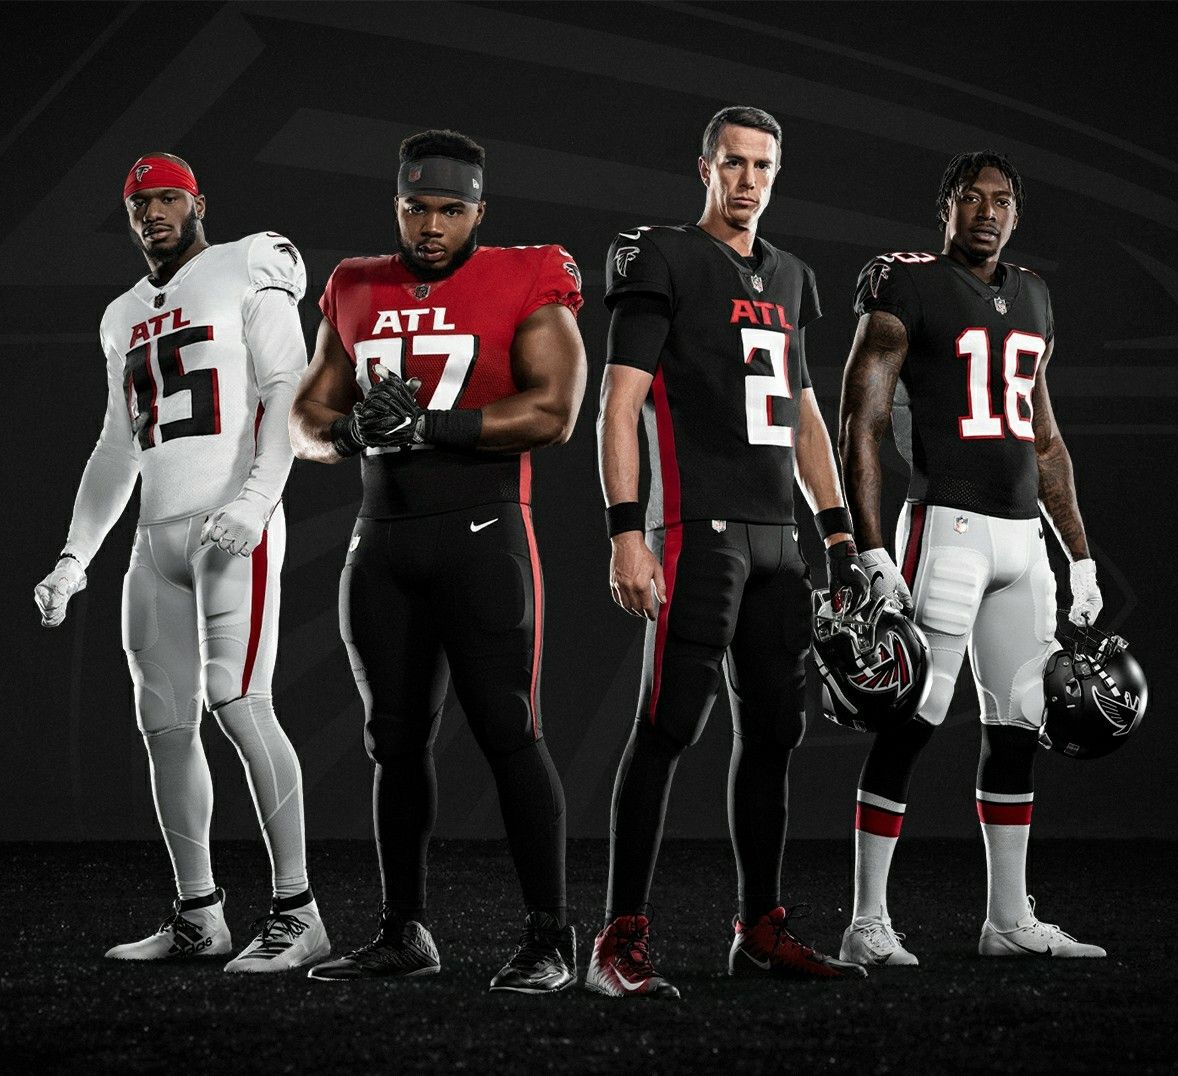 2020 Atlanta Falcons Uniforms In 2020 New Nfl Uniforms Nfl Uniforms Atlanta Falcons